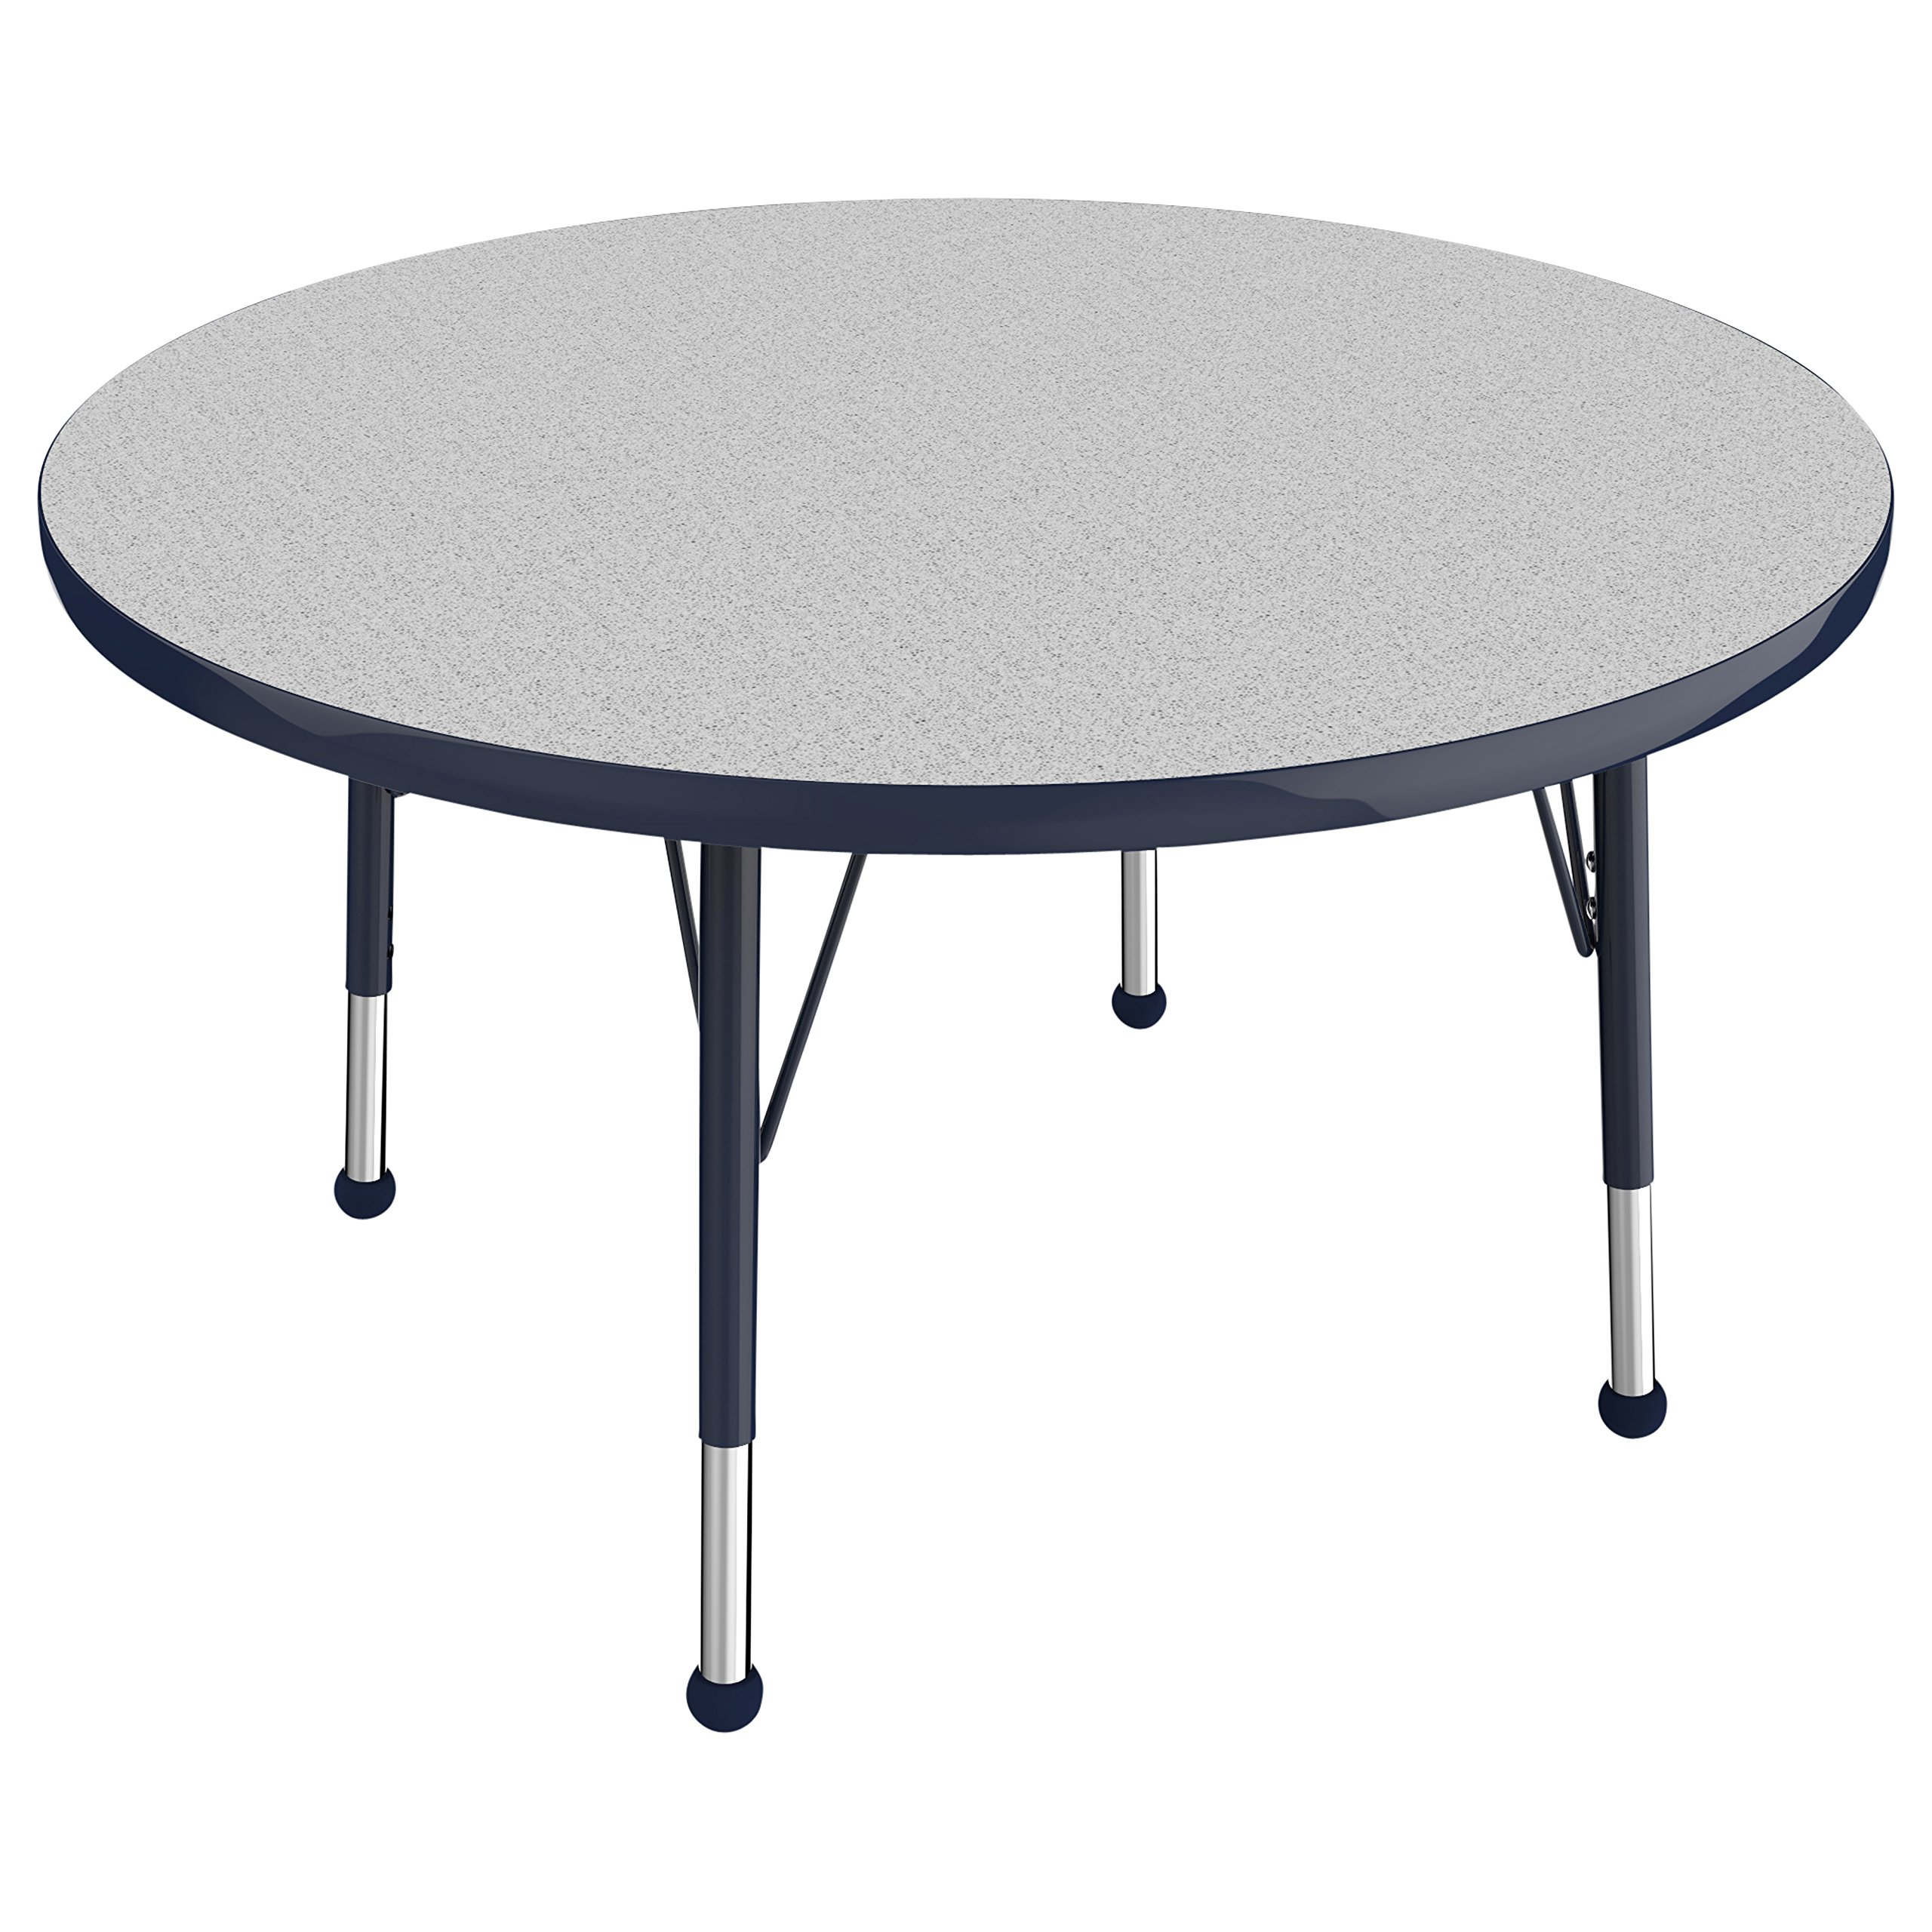 ECR4Kids T-Mold 36'' Round Activity School Table, Toddler Legs w/ Ball Glides, Adjustable Height 15-23 inch (Grey/Navy)